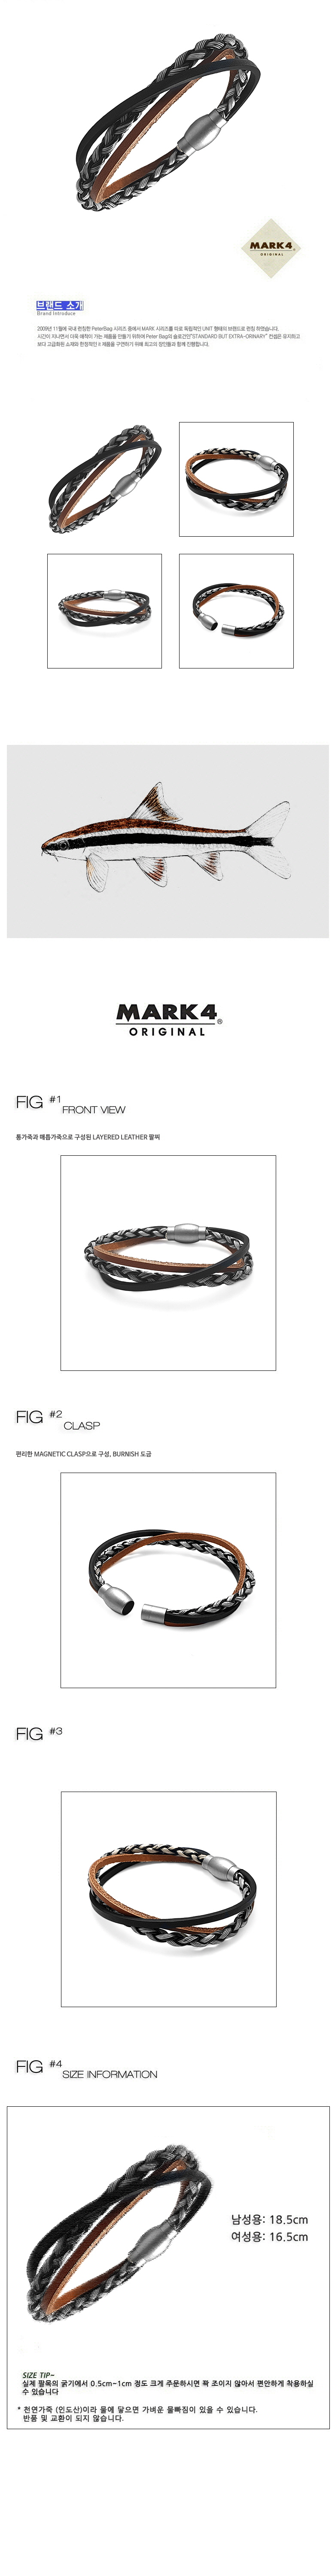 마크-4(MARK-4) LAYERED LEATHER BRACELET (3T3C)